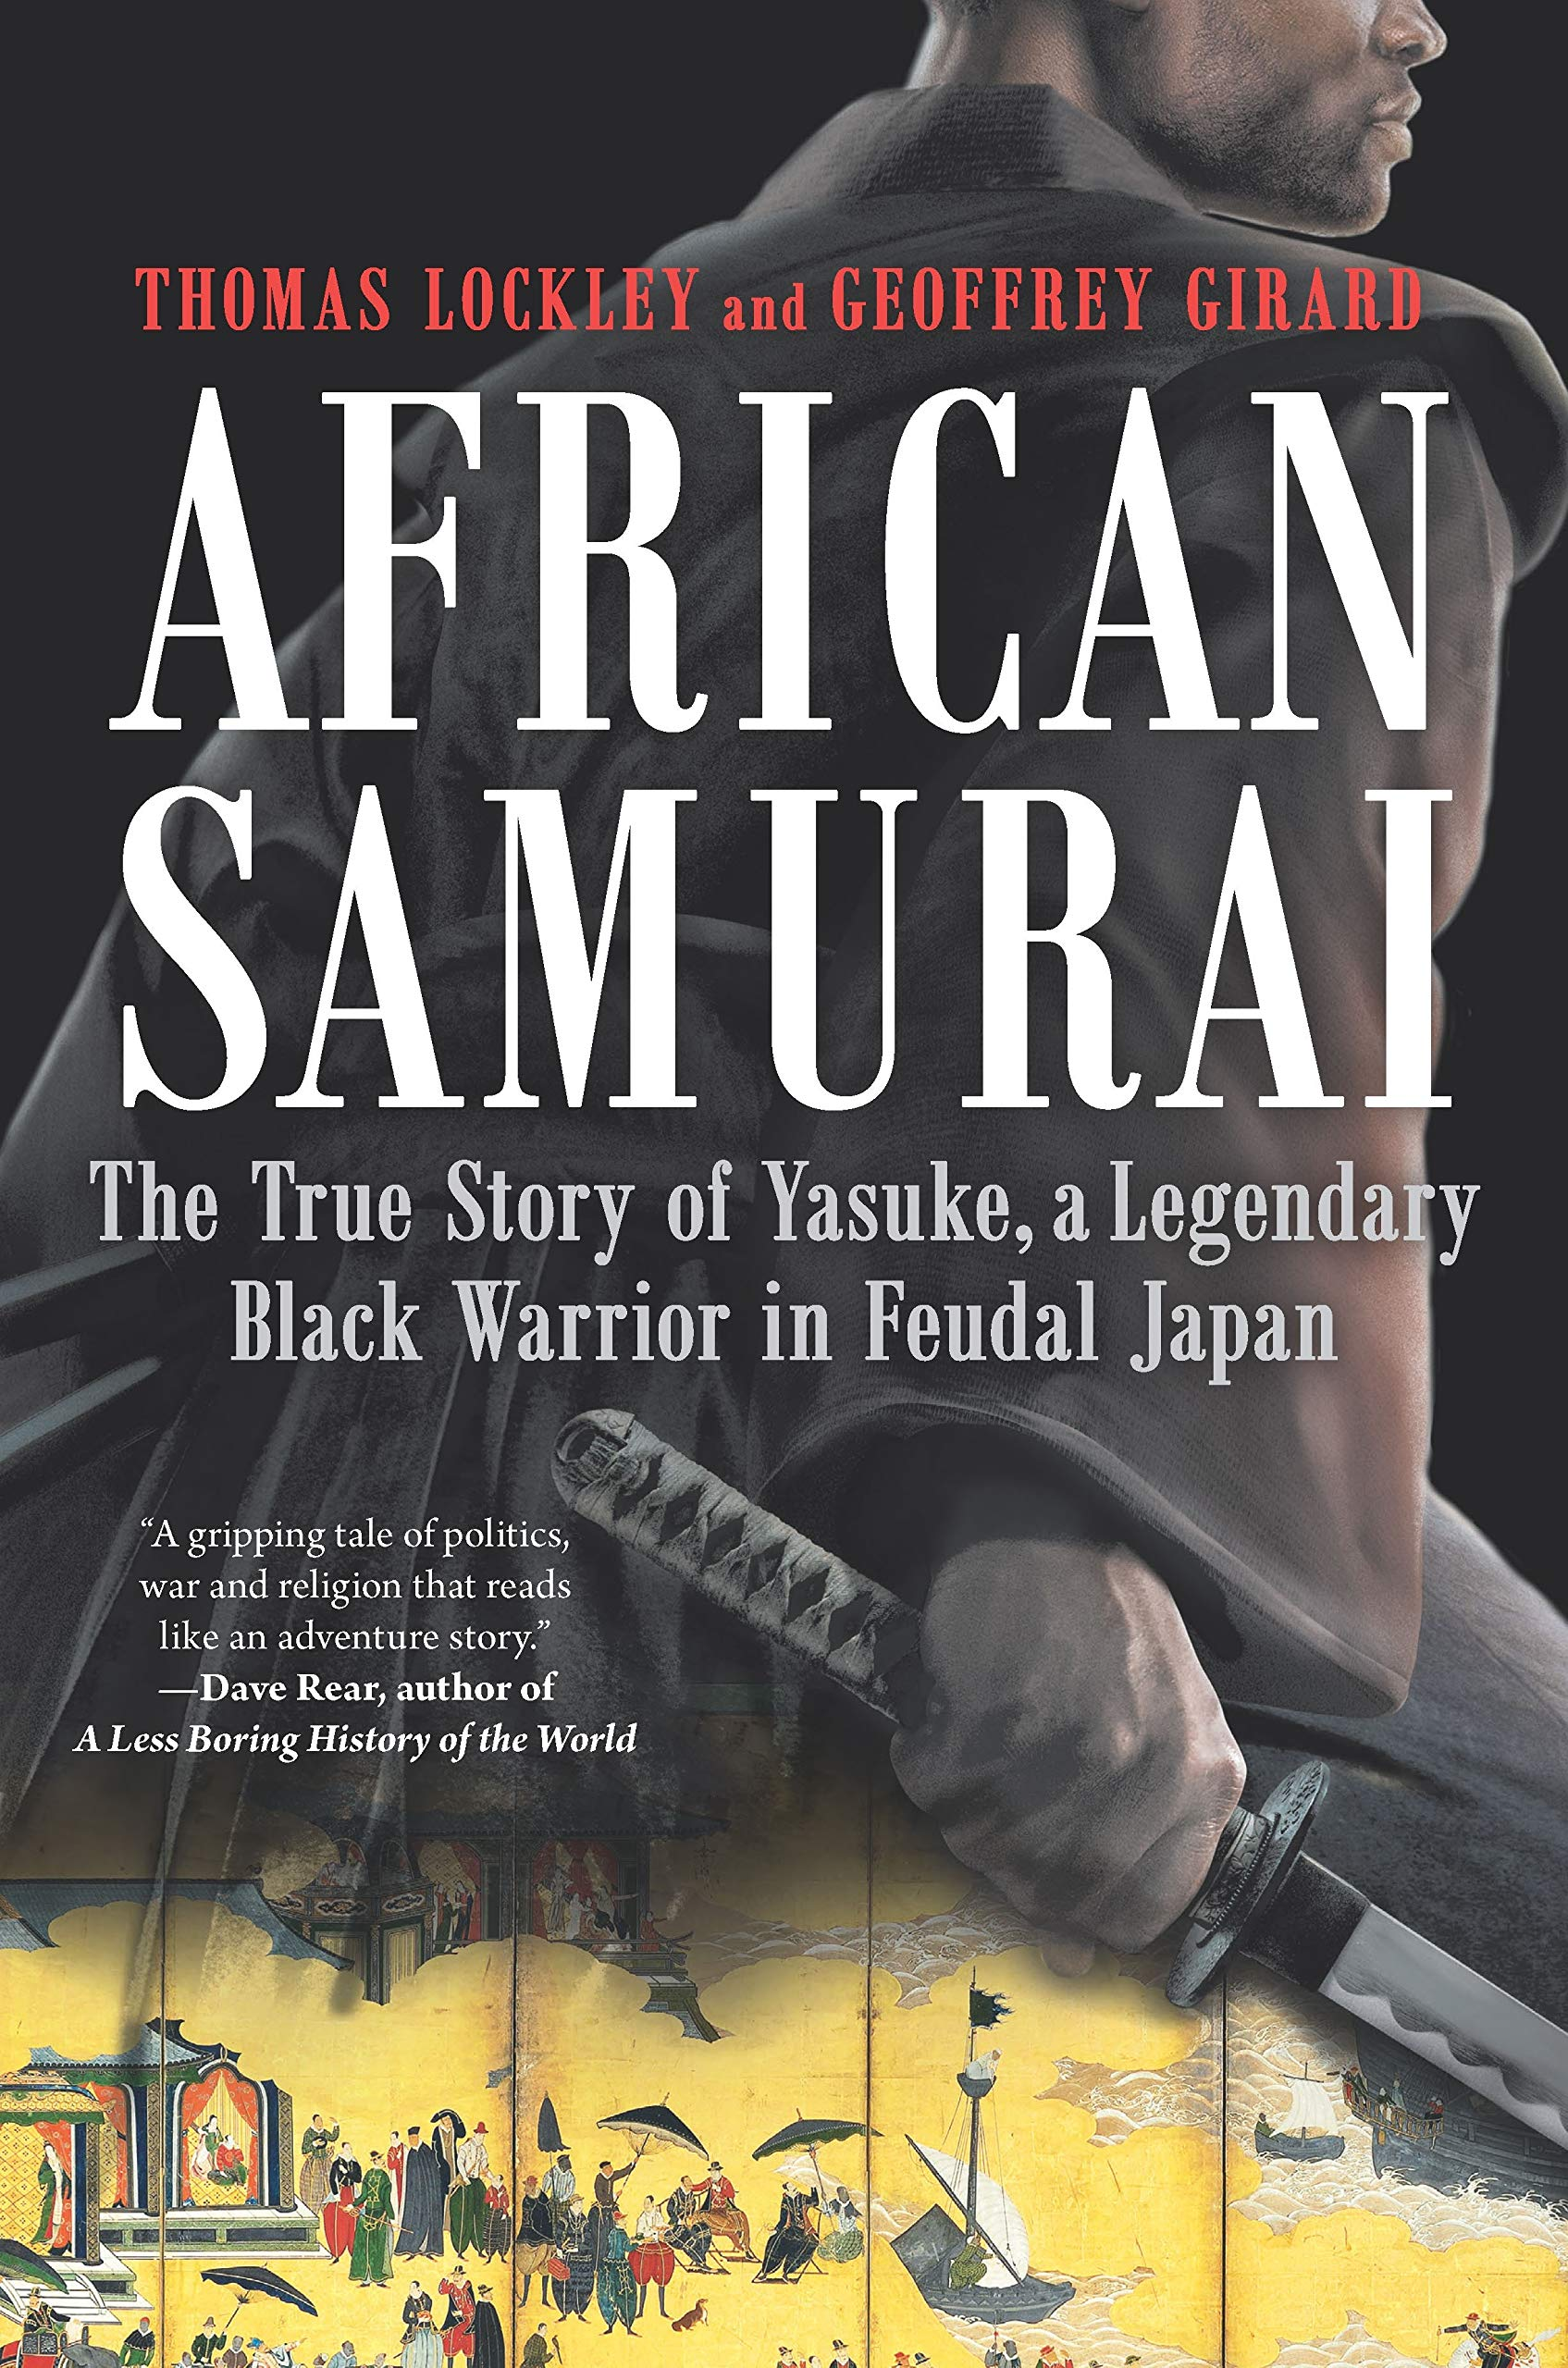 Amazon Com African Samurai The True Story Of Yasuke A Legendary Black Warrior In Feudal Japan 9781335141026 Girard Geoffrey Lockley Thomas Books Subscribe and stream latest movies to your smart tvs, smartphones, etc. amazon com african samurai the true